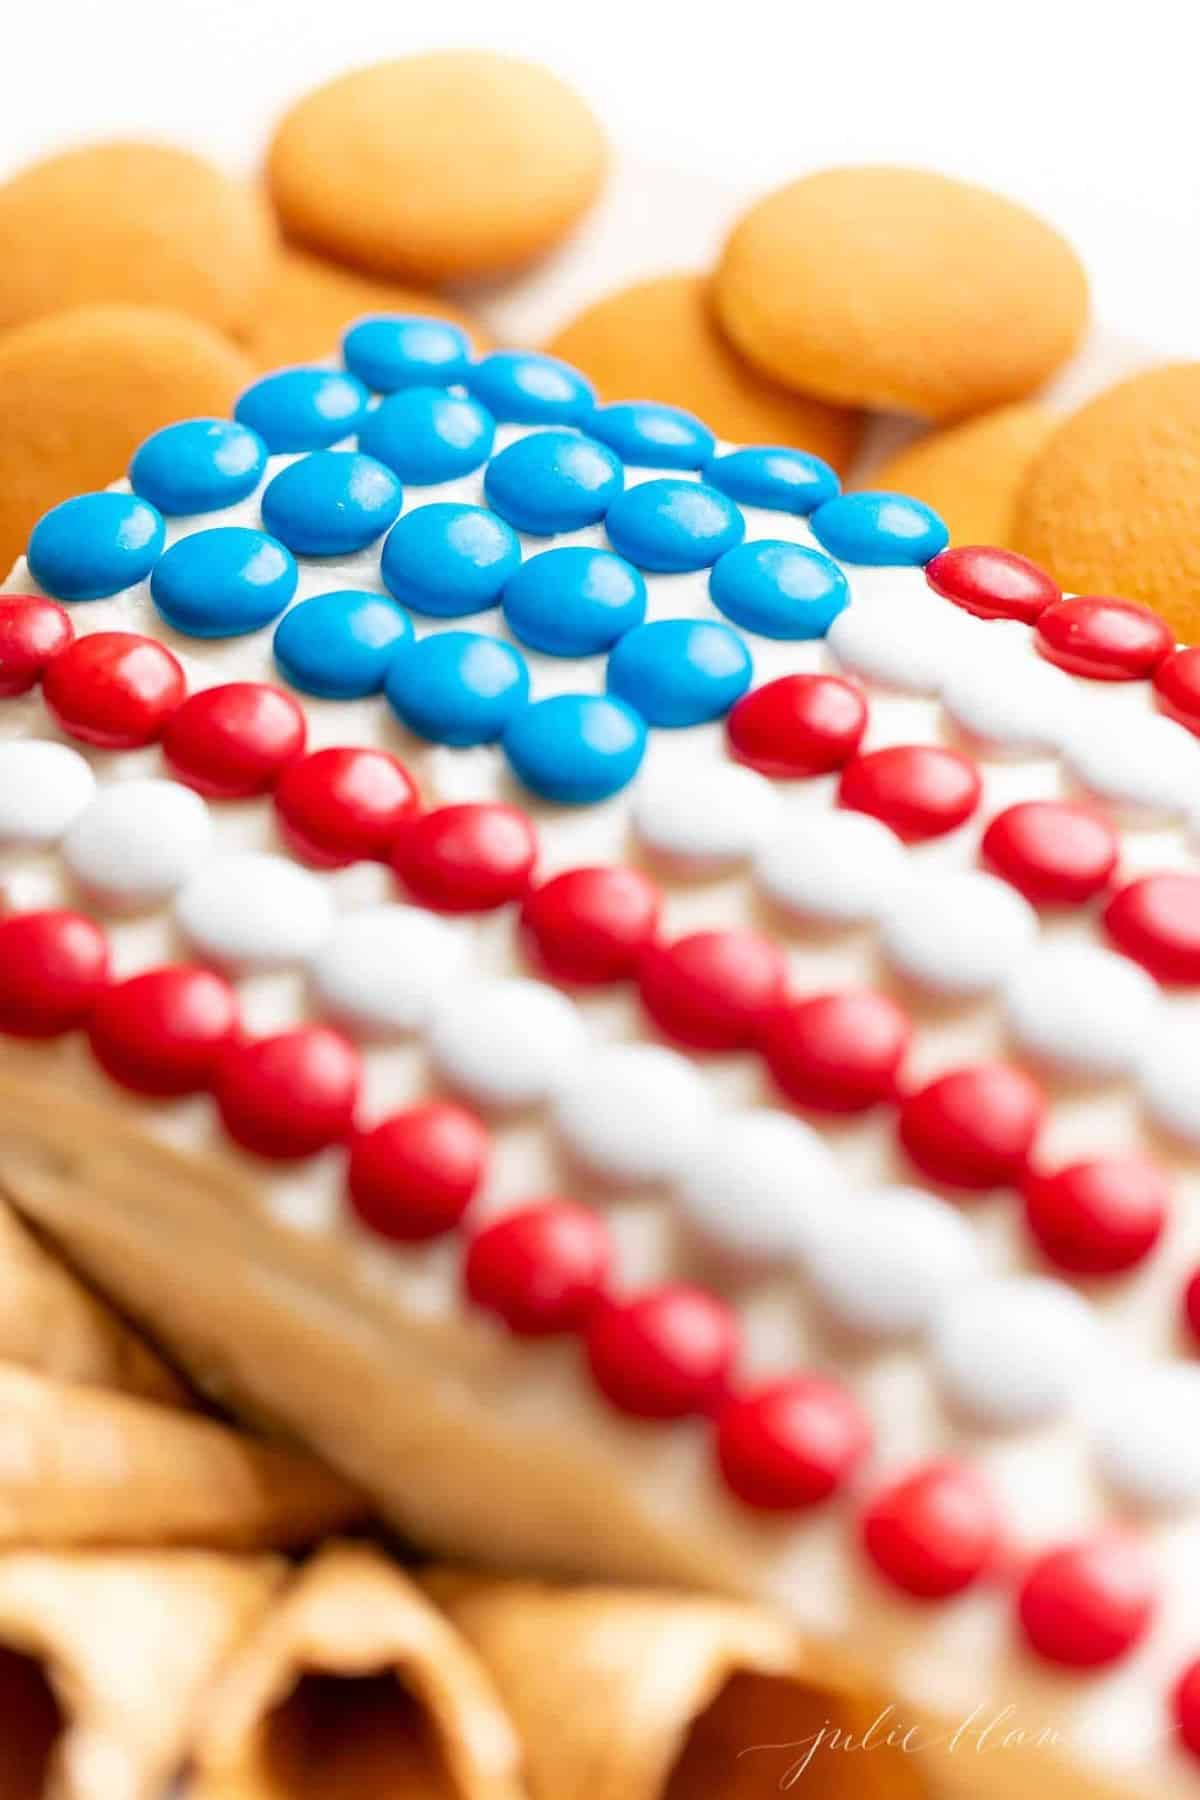 A frosted fourth of july flag dessert, covered in m&ms, crackers surrounding.